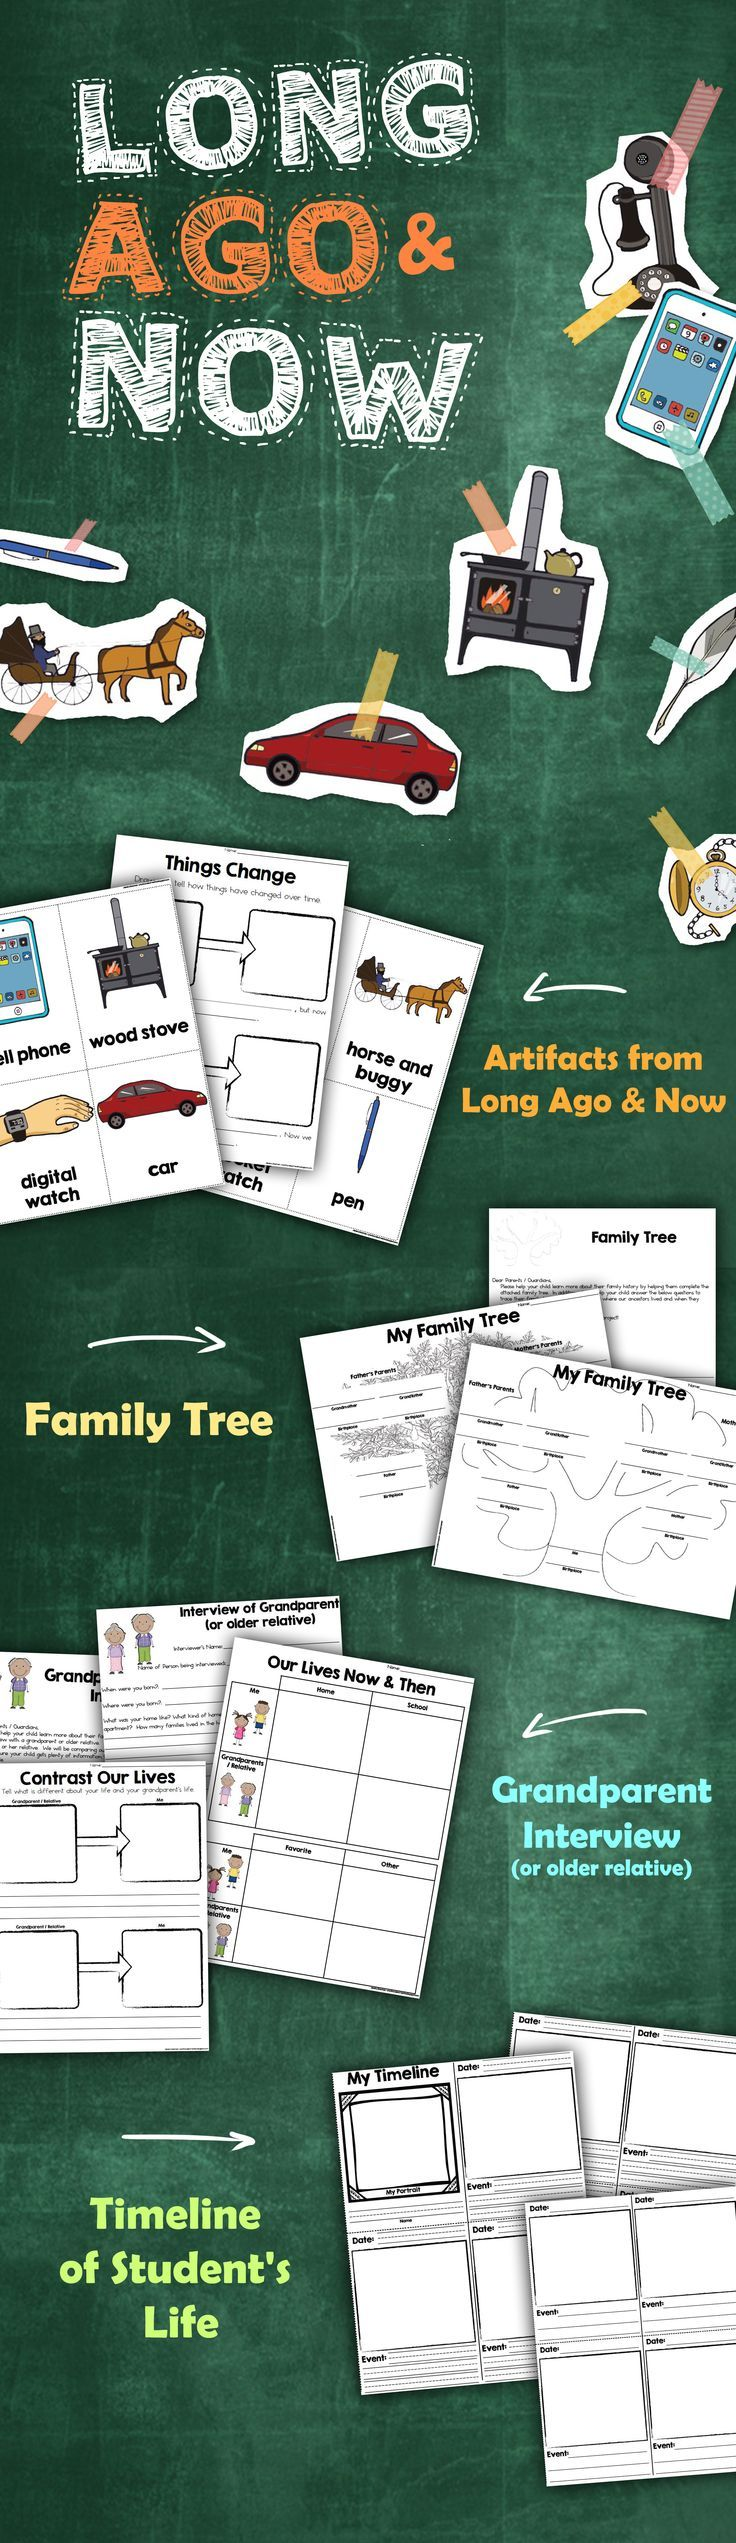 Long Ago & Now unit helps students understand how their lives relate to things and events long ago.  includes: • Compare and contrast artifacts long ago & today • Family Tree • Grandparent (or older relative) interview • Timeline | Teaching Social Studies | Elementary Social Studies Education | History Unit